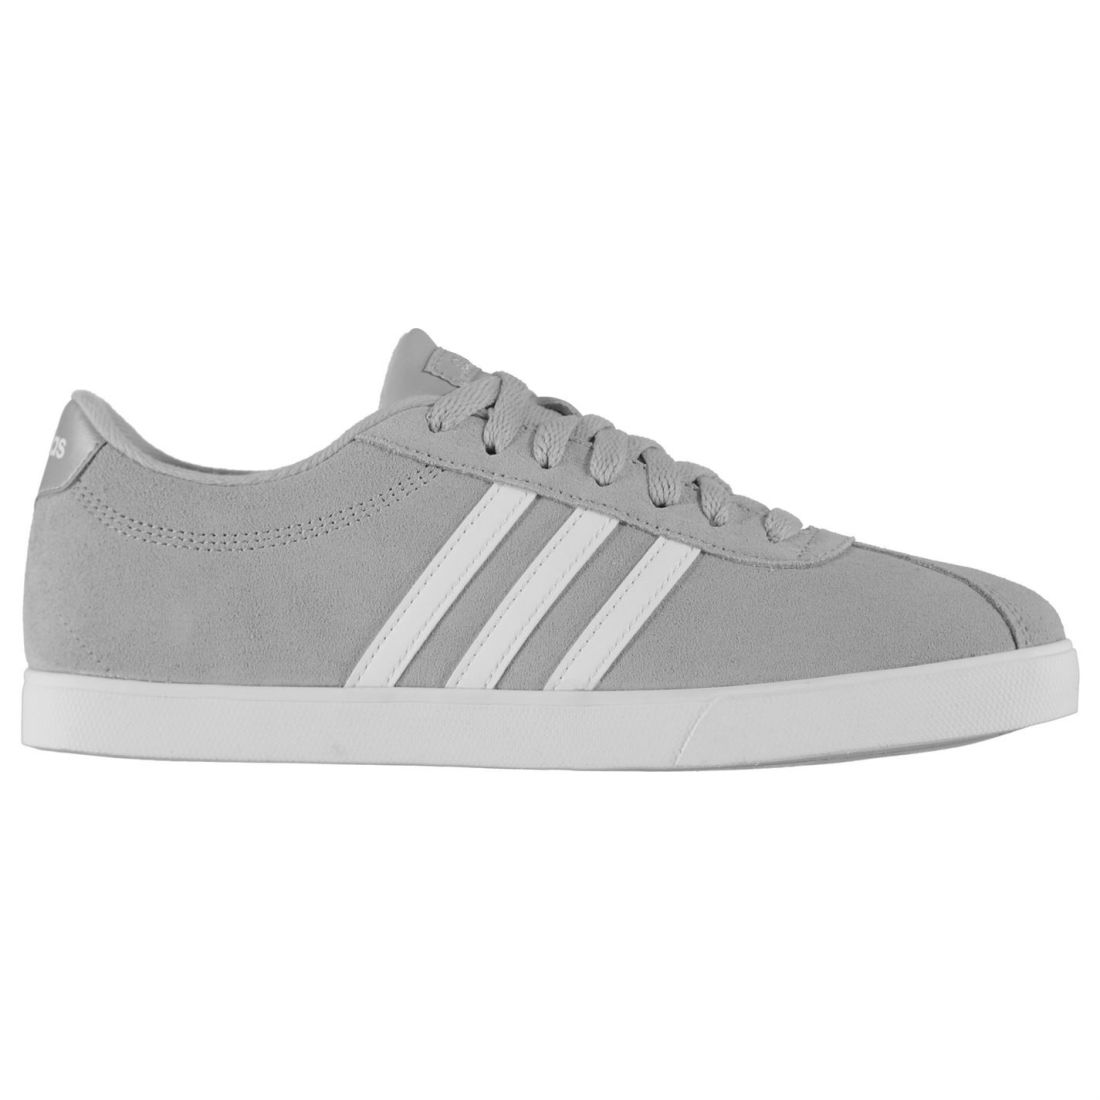 a836e1e5e0f8ed Image is loading Womens-adidas-CourtSet-Suede-Shoes-Trainers-Stripe-New